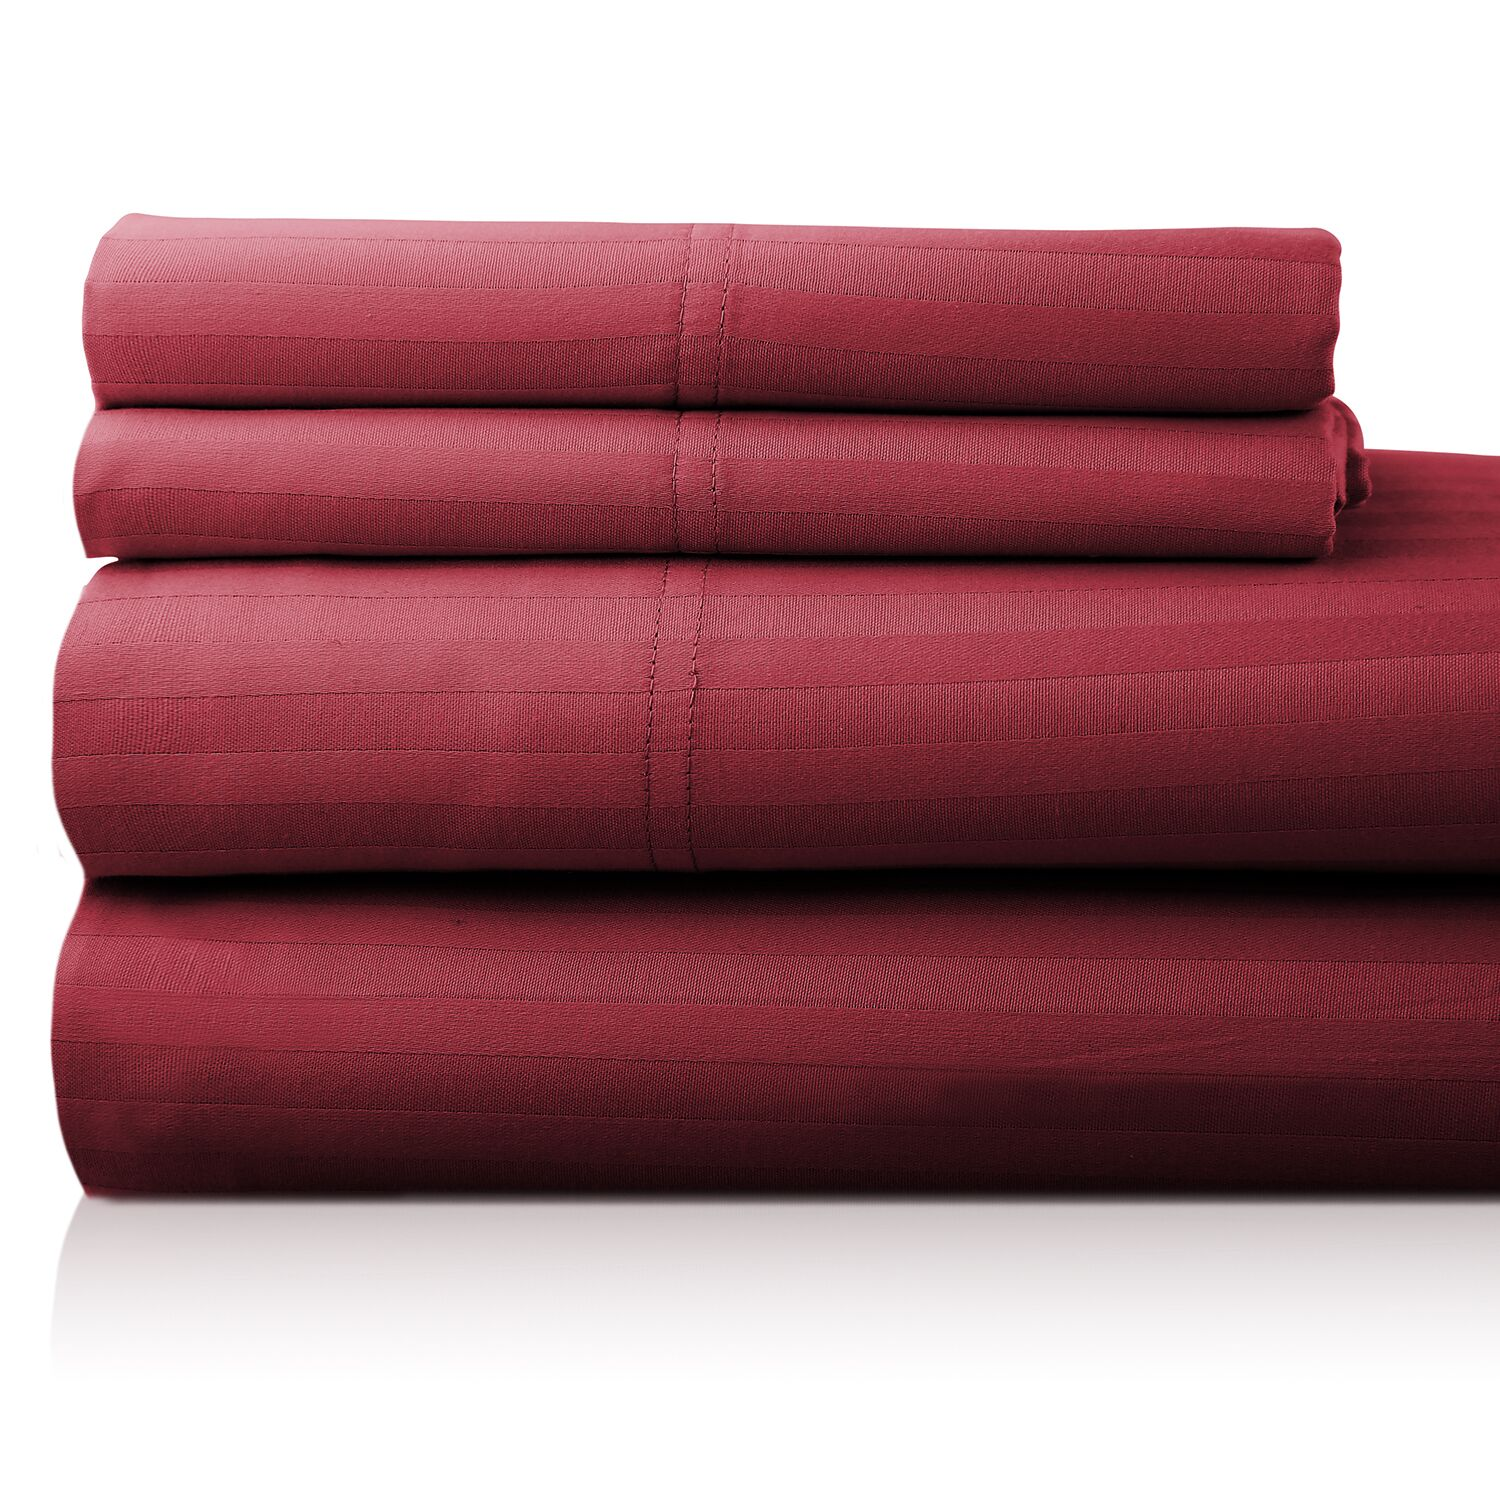 Valentino 4 Piece 1200 Thread Count Egyptian Quality Cotton Sheet Set Color: Wine, Size: Queen